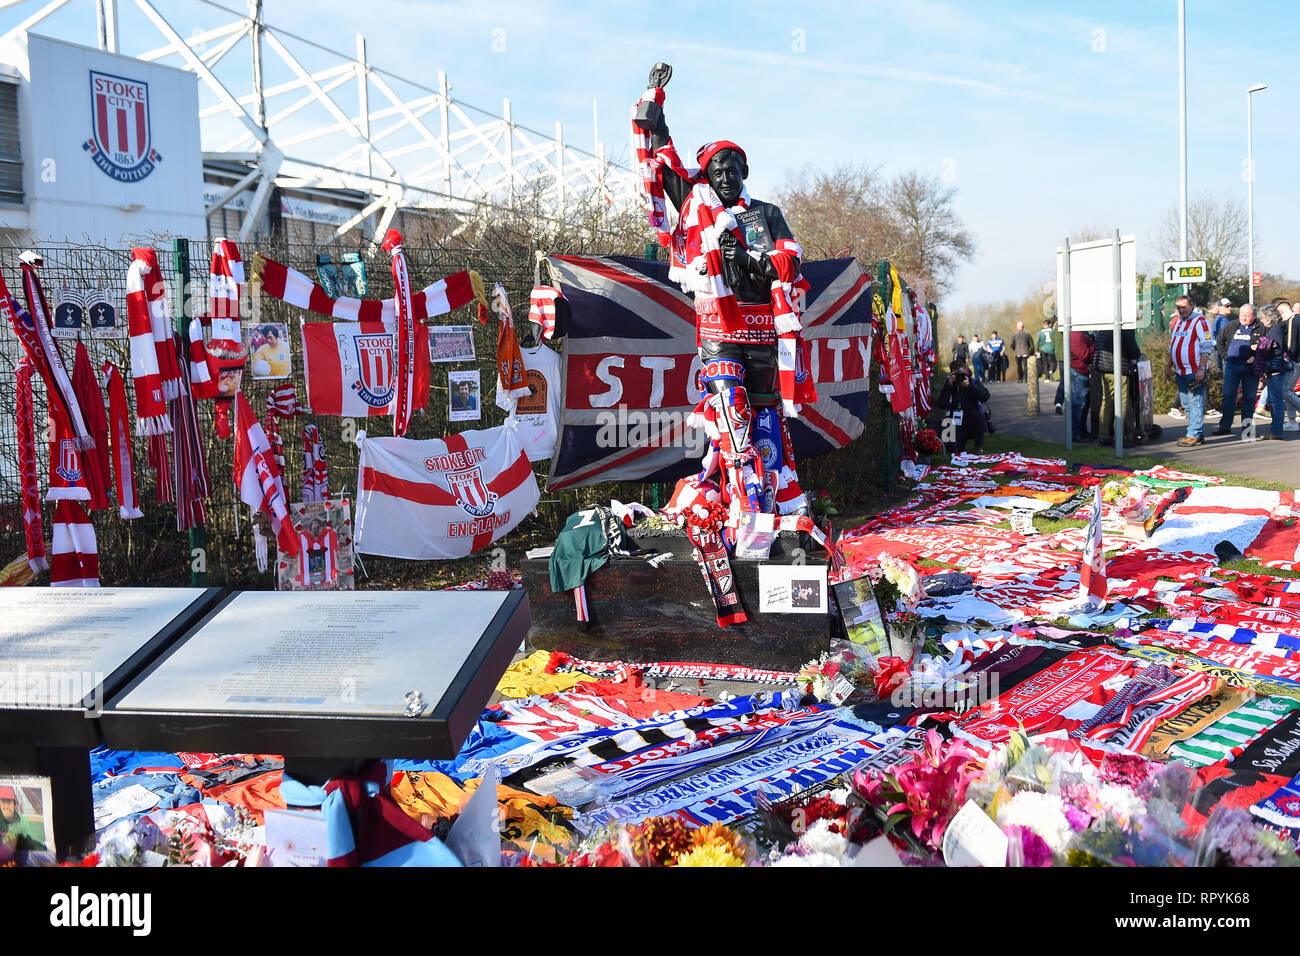 Stoke-on-Trent, Staffordshire, UK. 23rd Feb, 2019. Memorial for Gordon Banks OBE during the Sky Bet Championship match between Stoke City and Aston Villa at the Britannia Stadium, Stoke-on-Trent on Saturday 23rd February 2019. (Credit: Jon Hobley | MI News) Credit: MI News & Sport /Alamy Live News - Stock Image